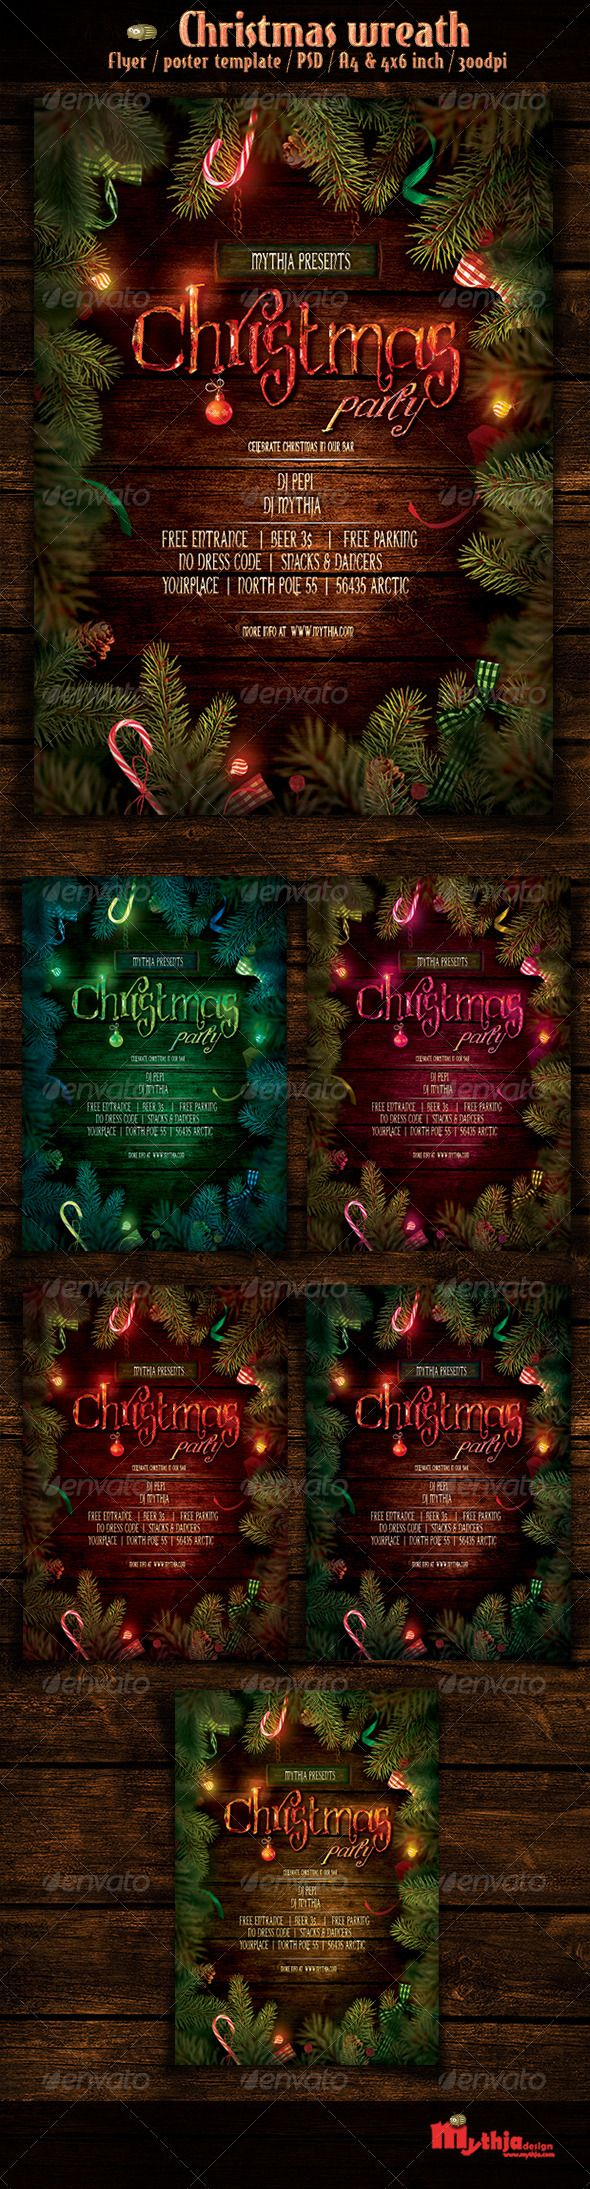 best images about graphic designs promotion christmas wreath event flyer poster template